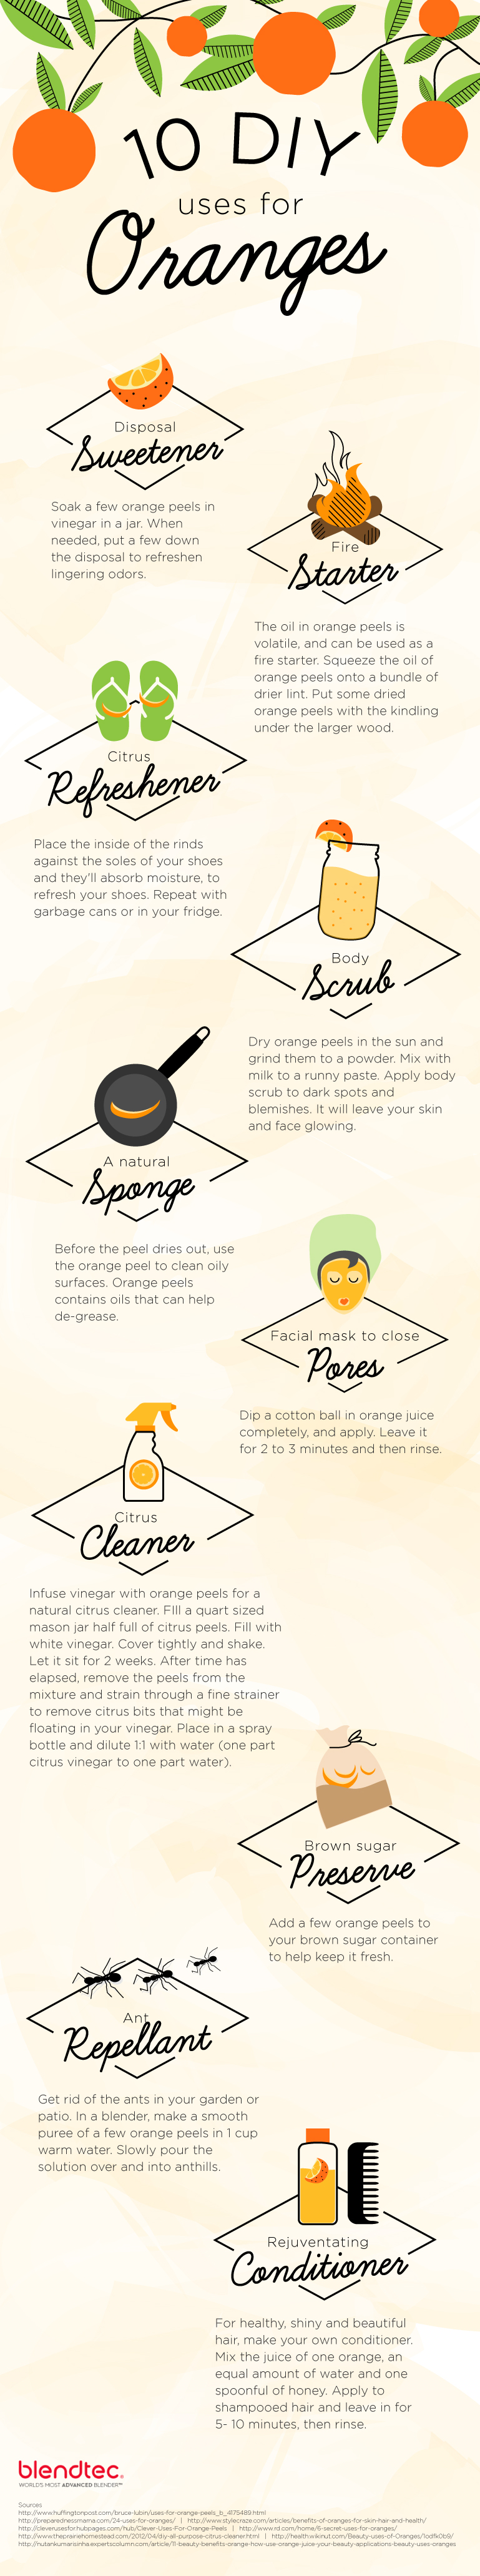 Uses for Oranges